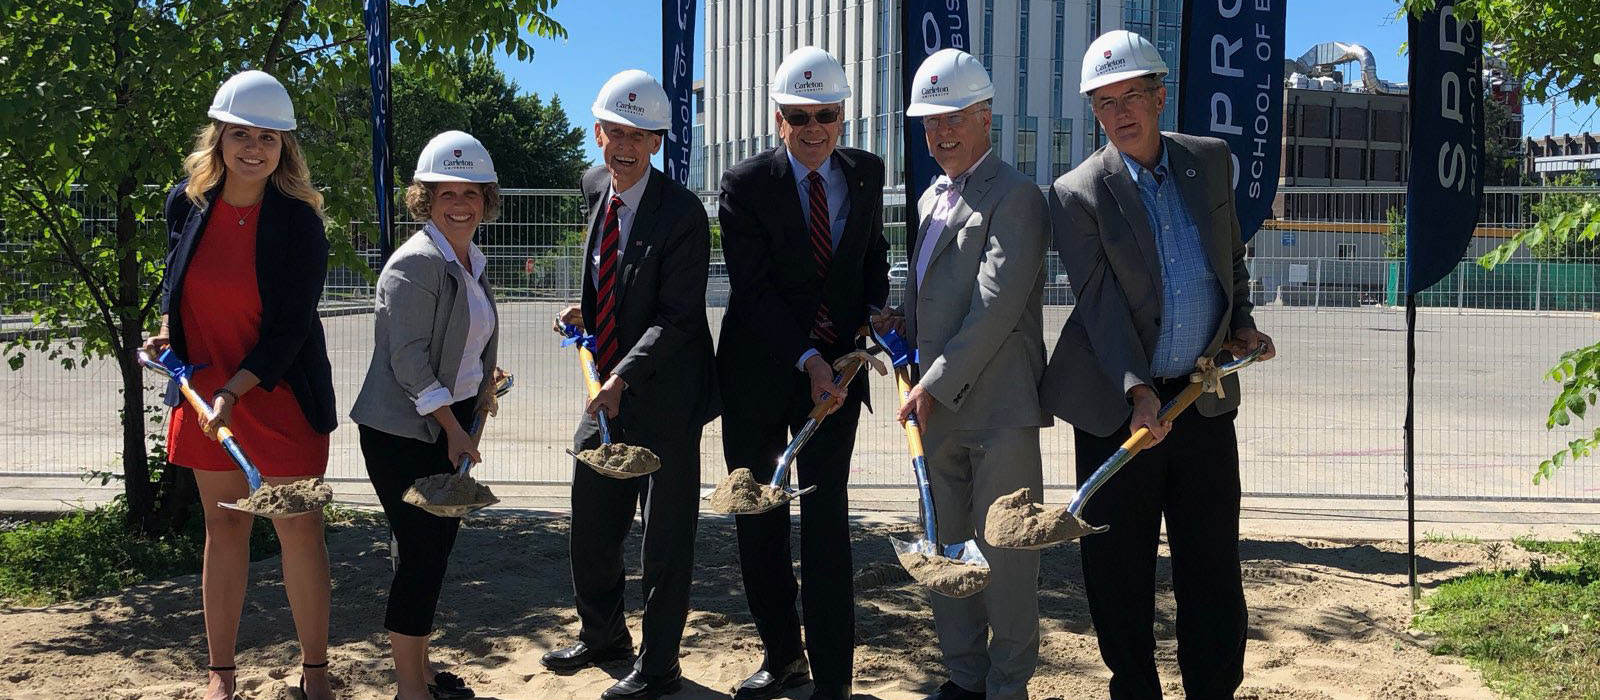 SBSS President Hanna Di Virgilio, Interim Dean Linda Schweitzer, Interim Provost Jerry Tomberlin, Board of Governors Chair Chris Carruthers, Bruce Nicol and Associate VP Darryl Boyce break ground for the Nicol Building at Carleton University.